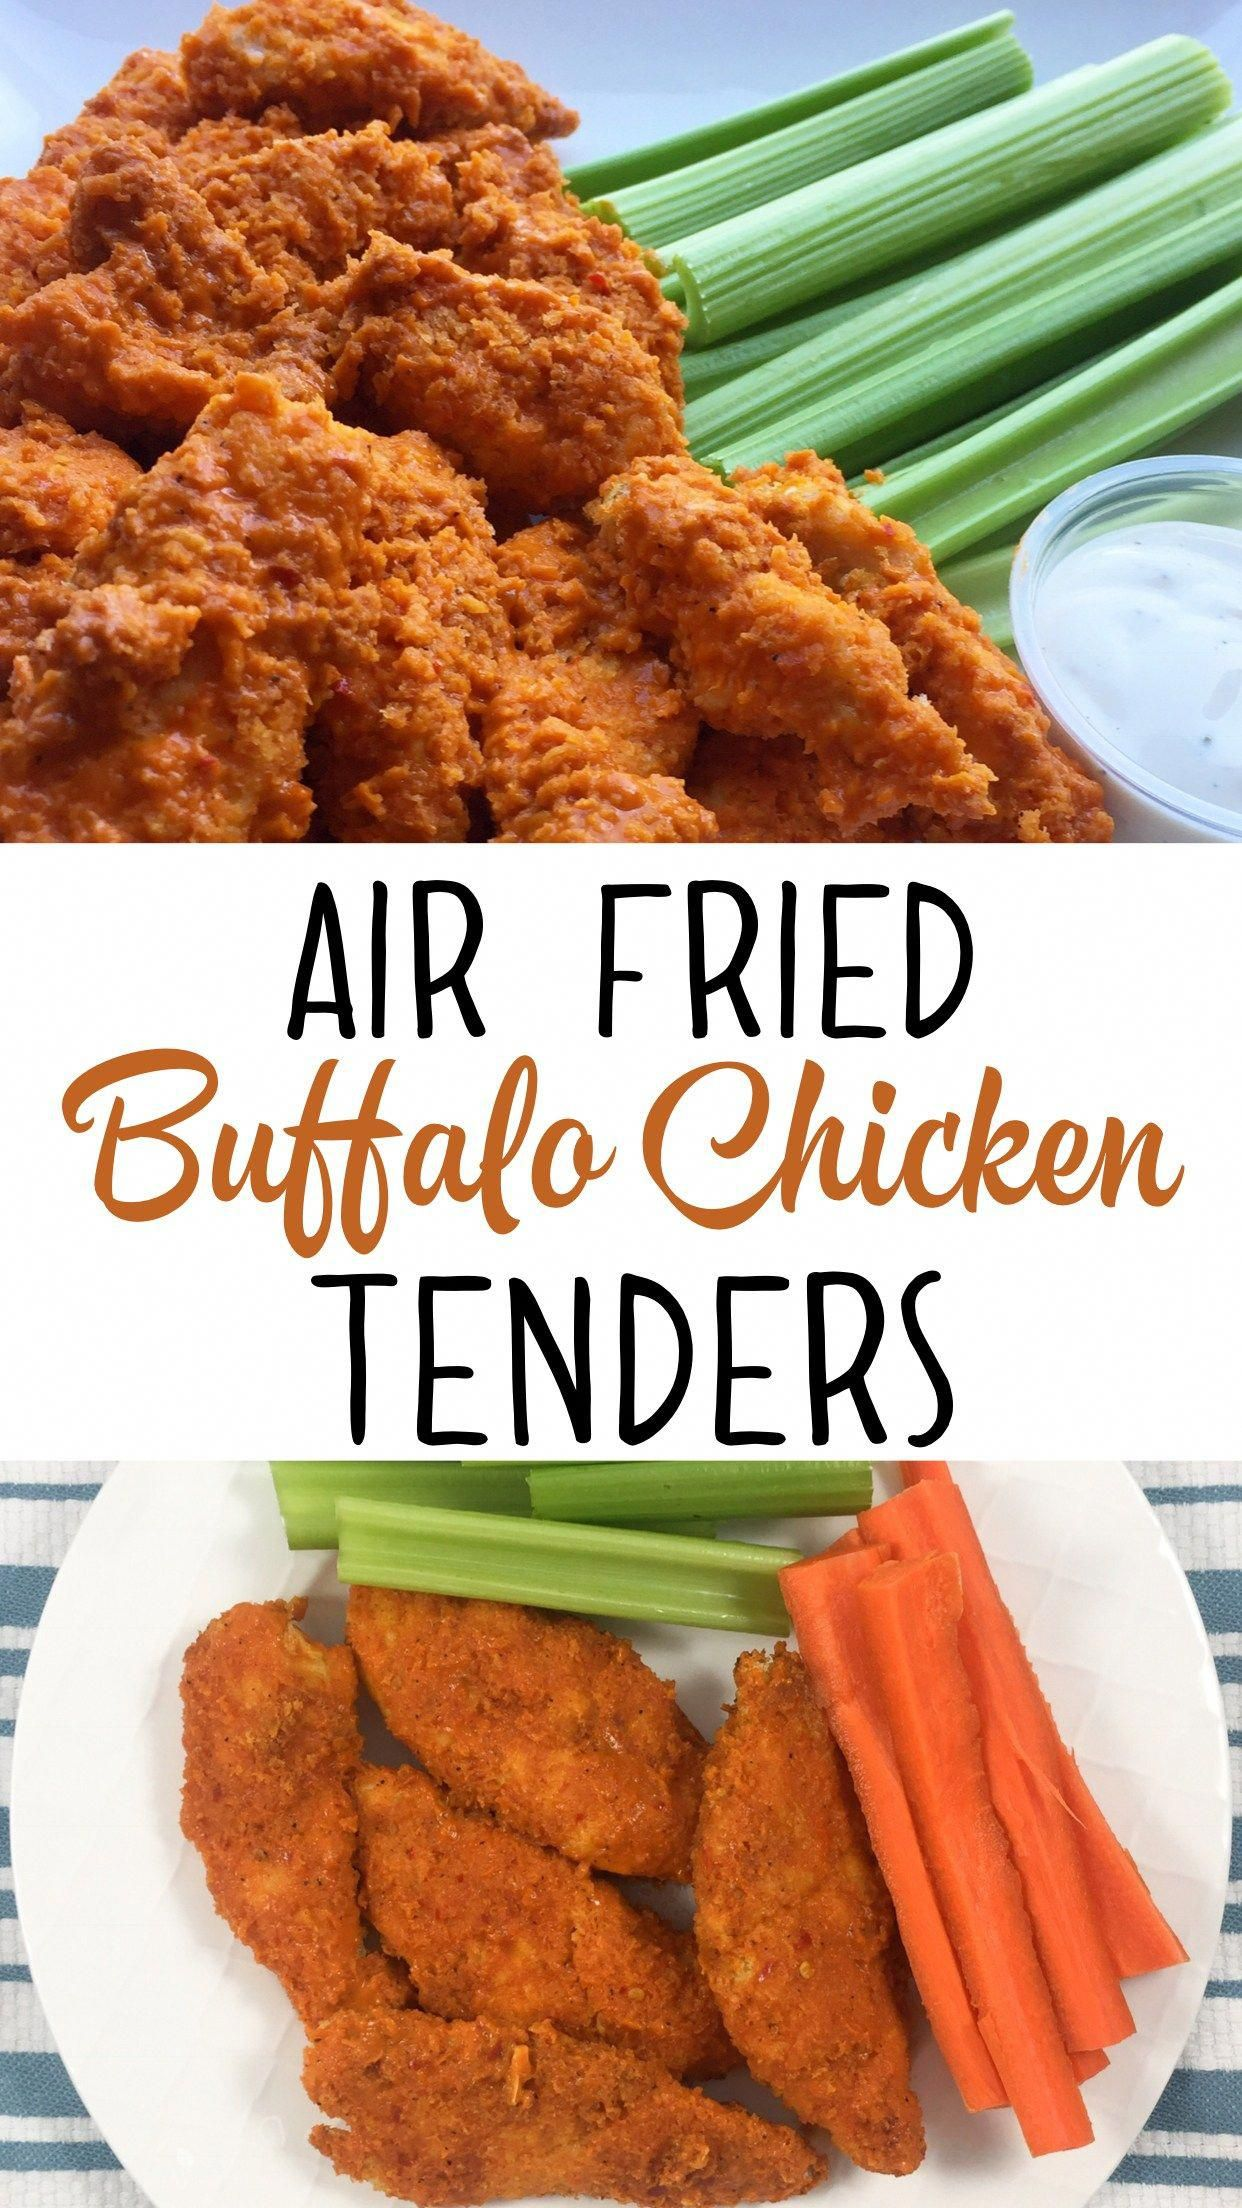 A healthy buffalo chicken recipe for your air fryer. It's quick, easy and SO delicious!